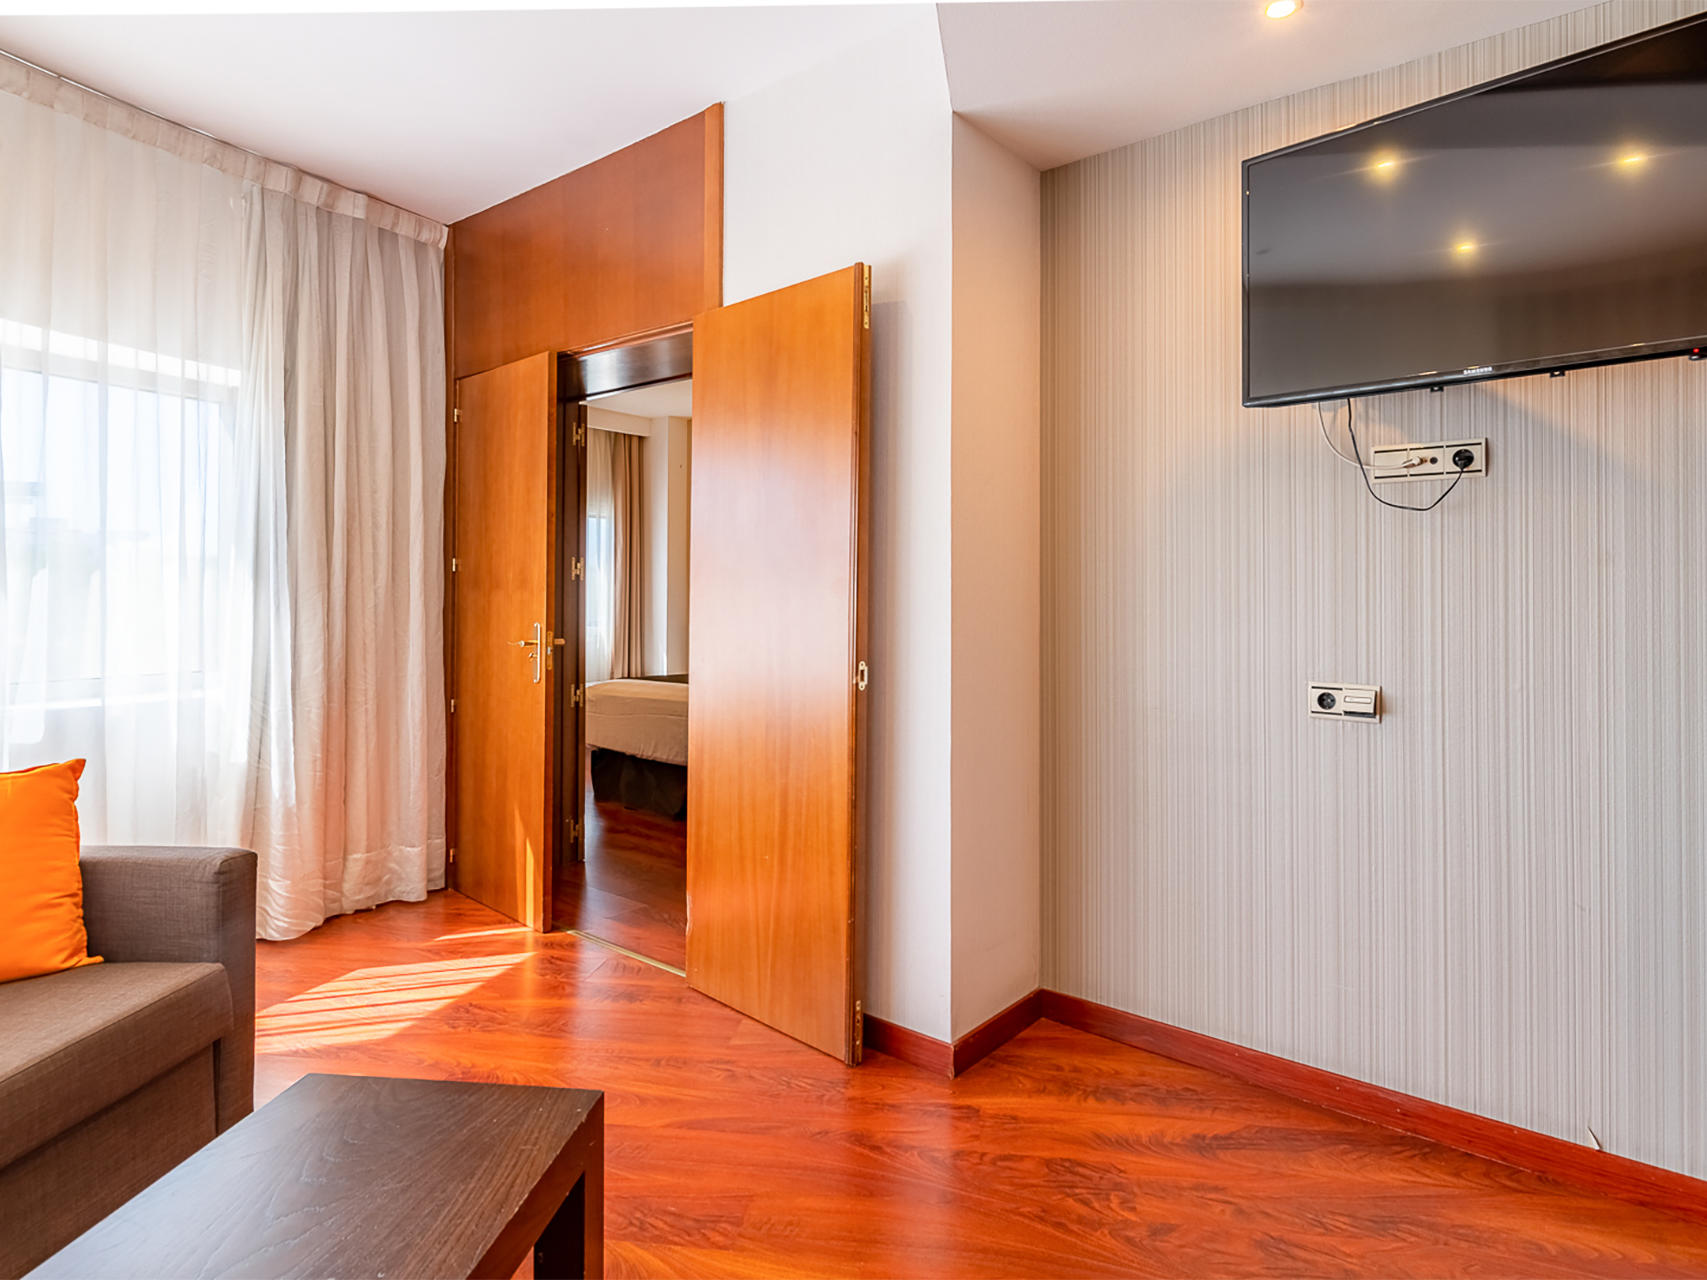 Family Room at Hotel Amura Alcobendas near Madrid Airport